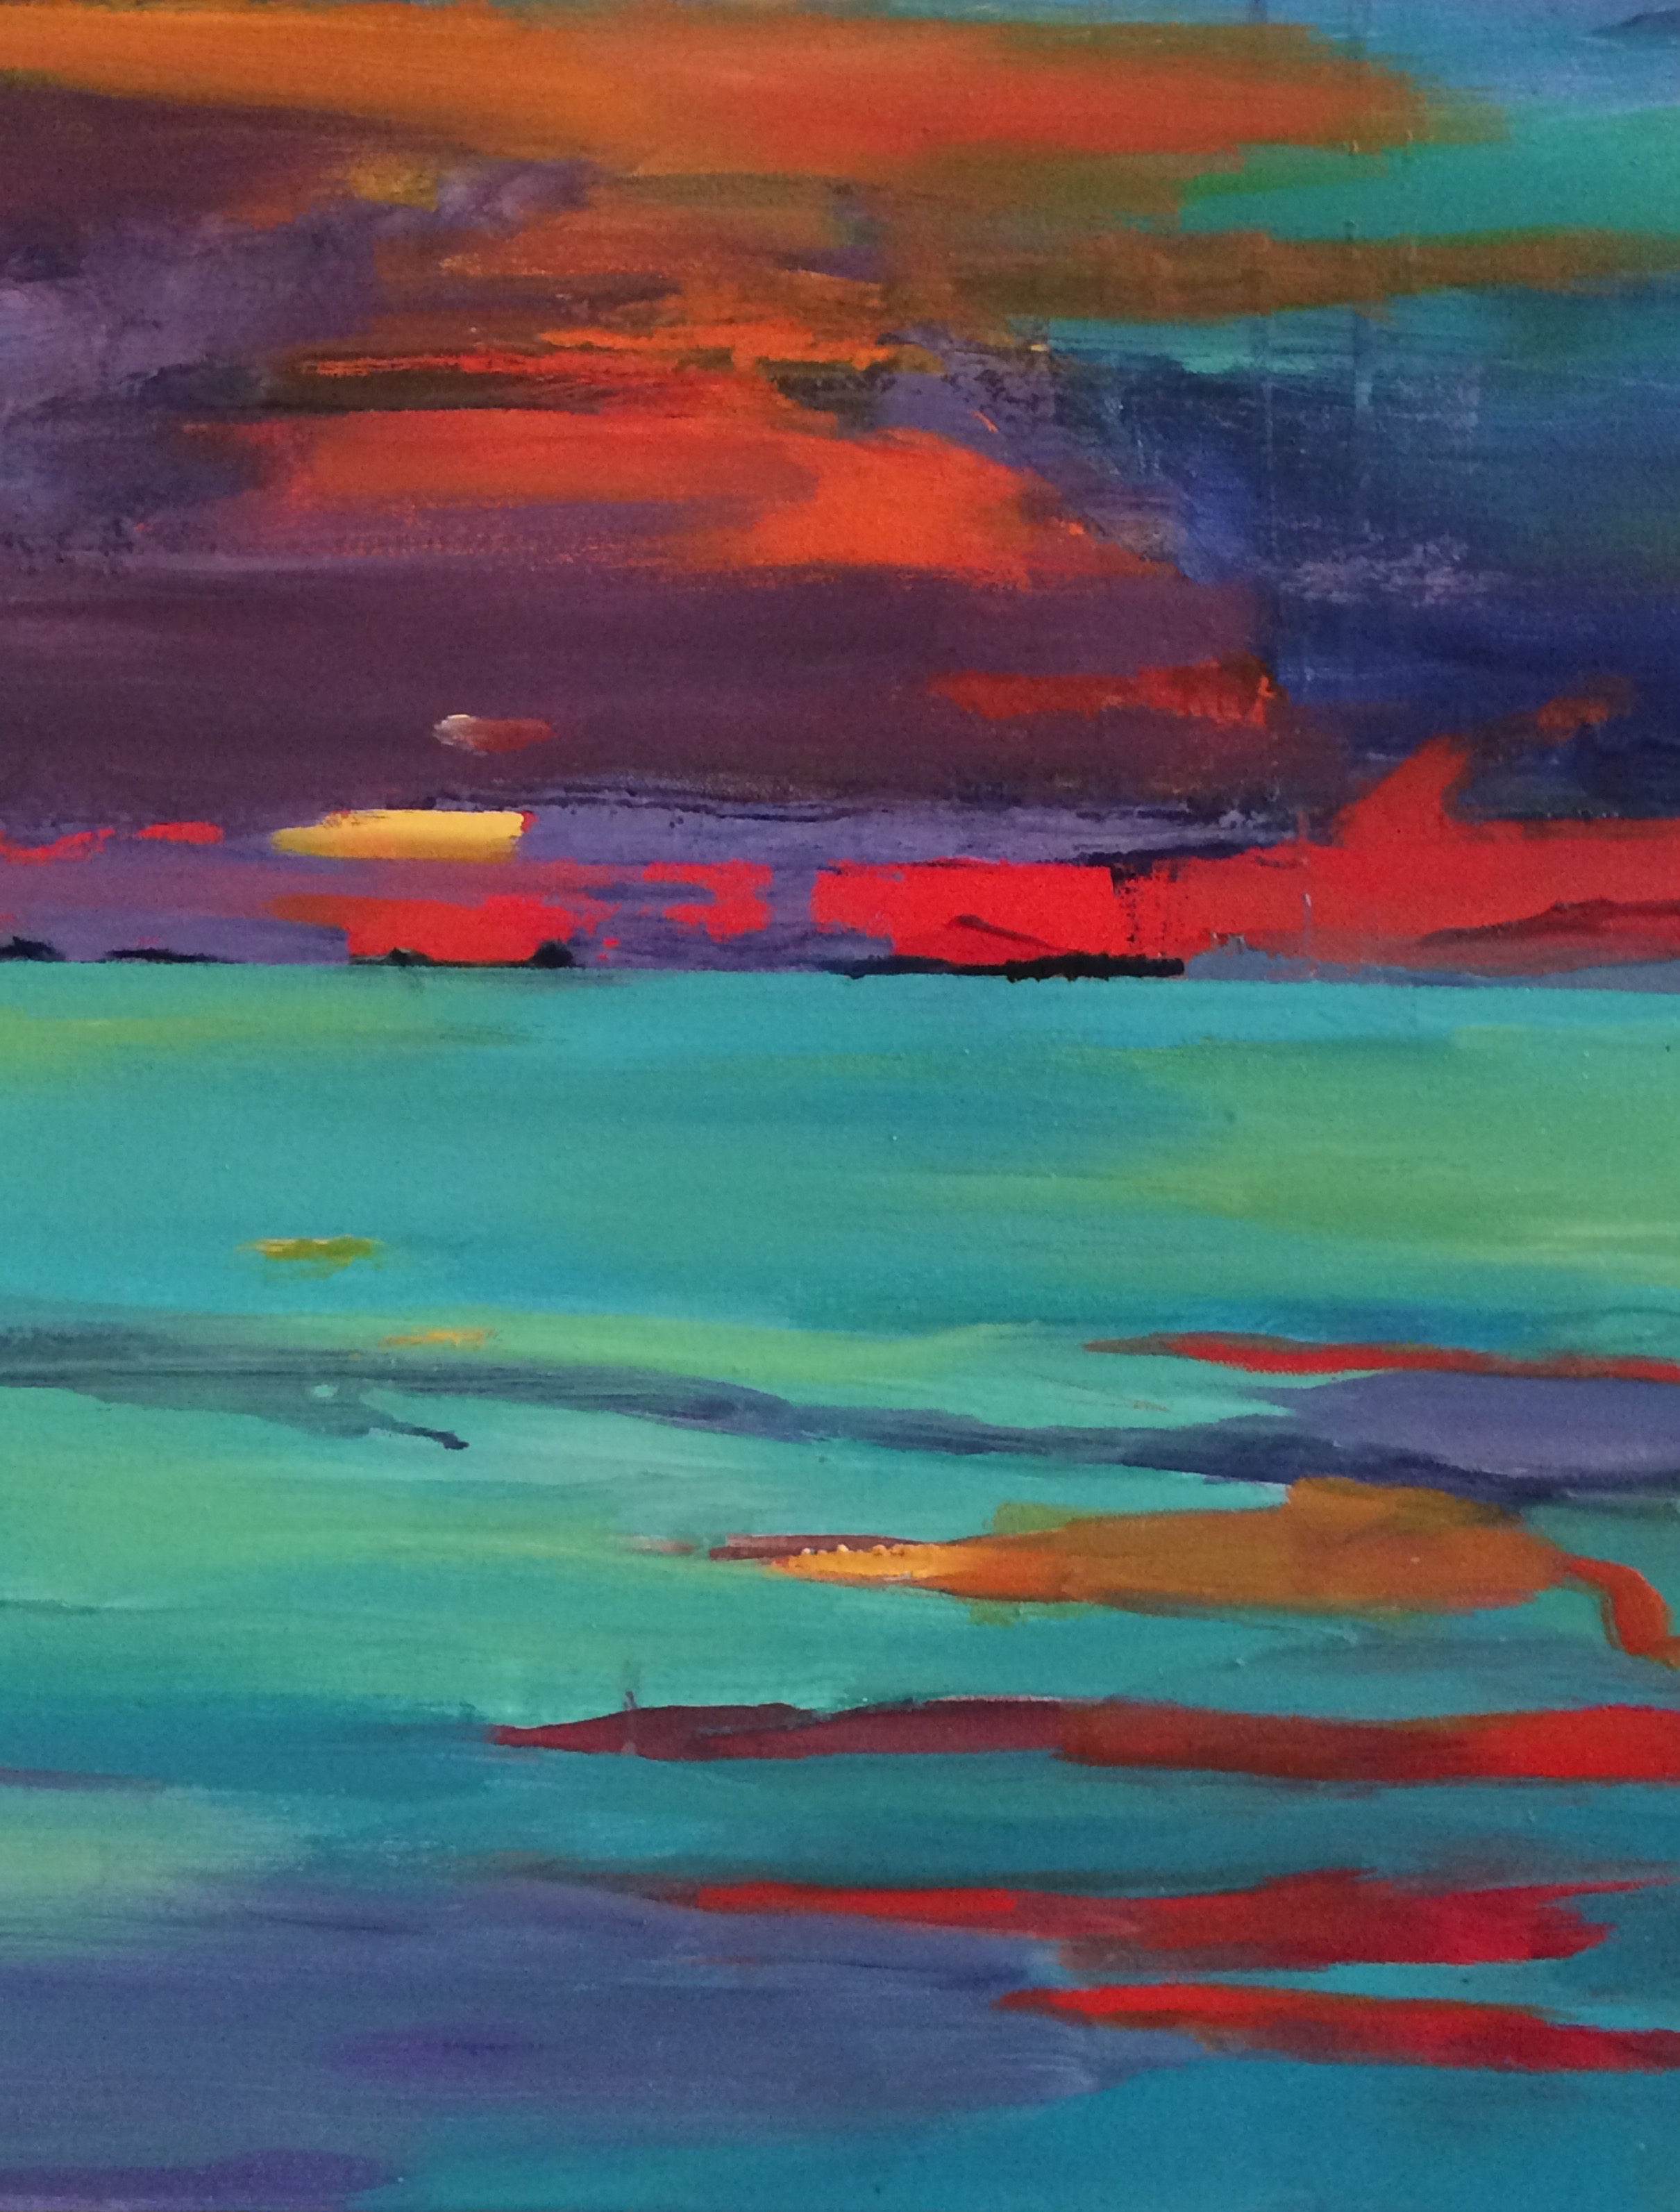 """ Island Sunset"" 24"" x 20"" acrylic on canvas $300"